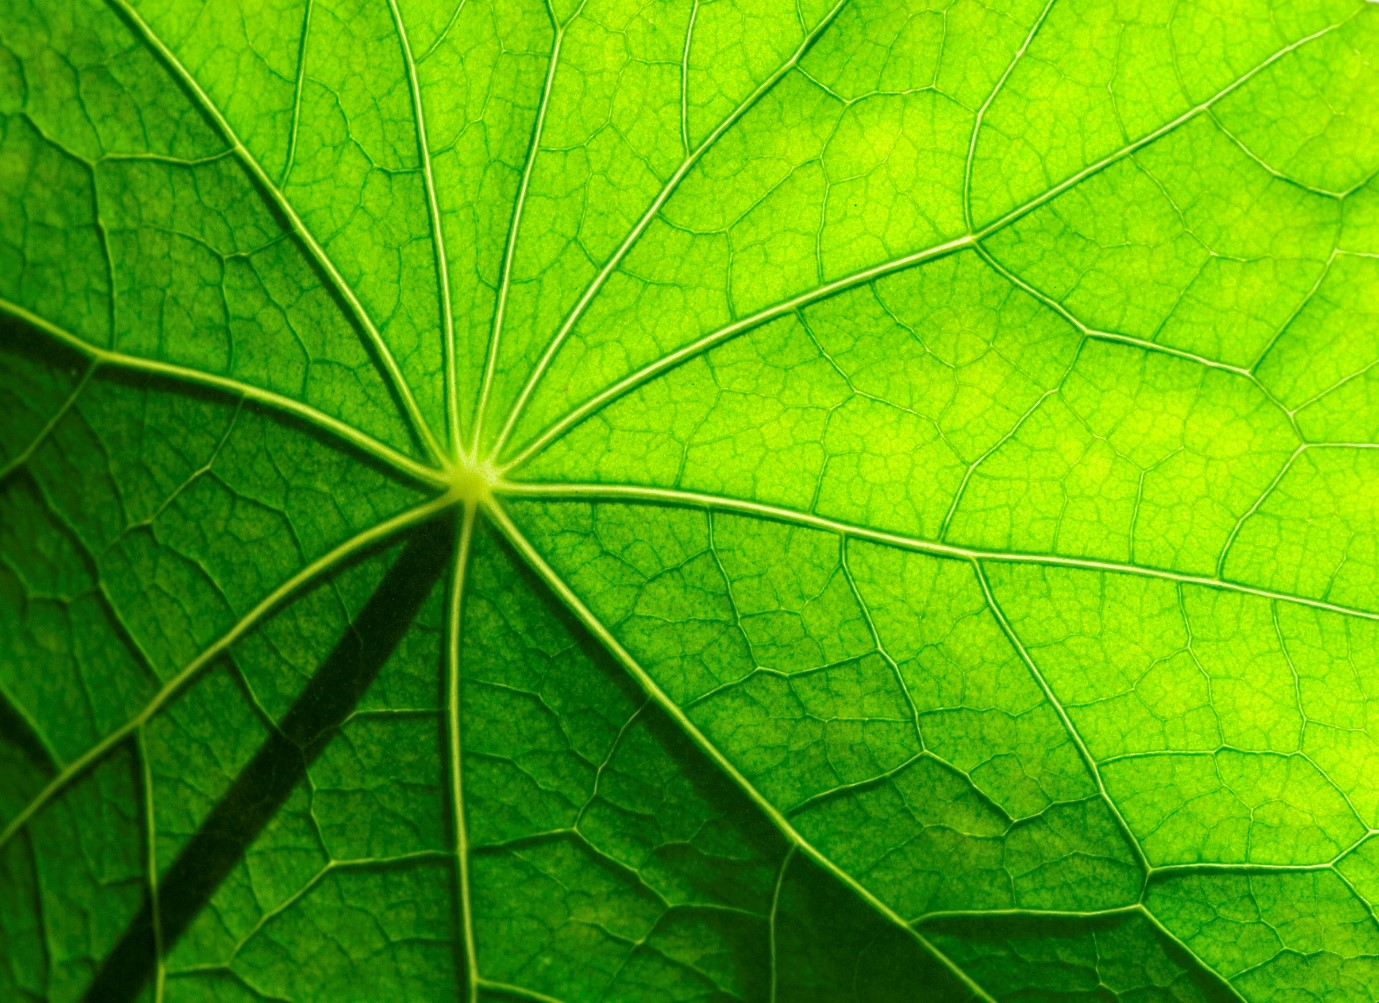 biomimicry - stroming blad